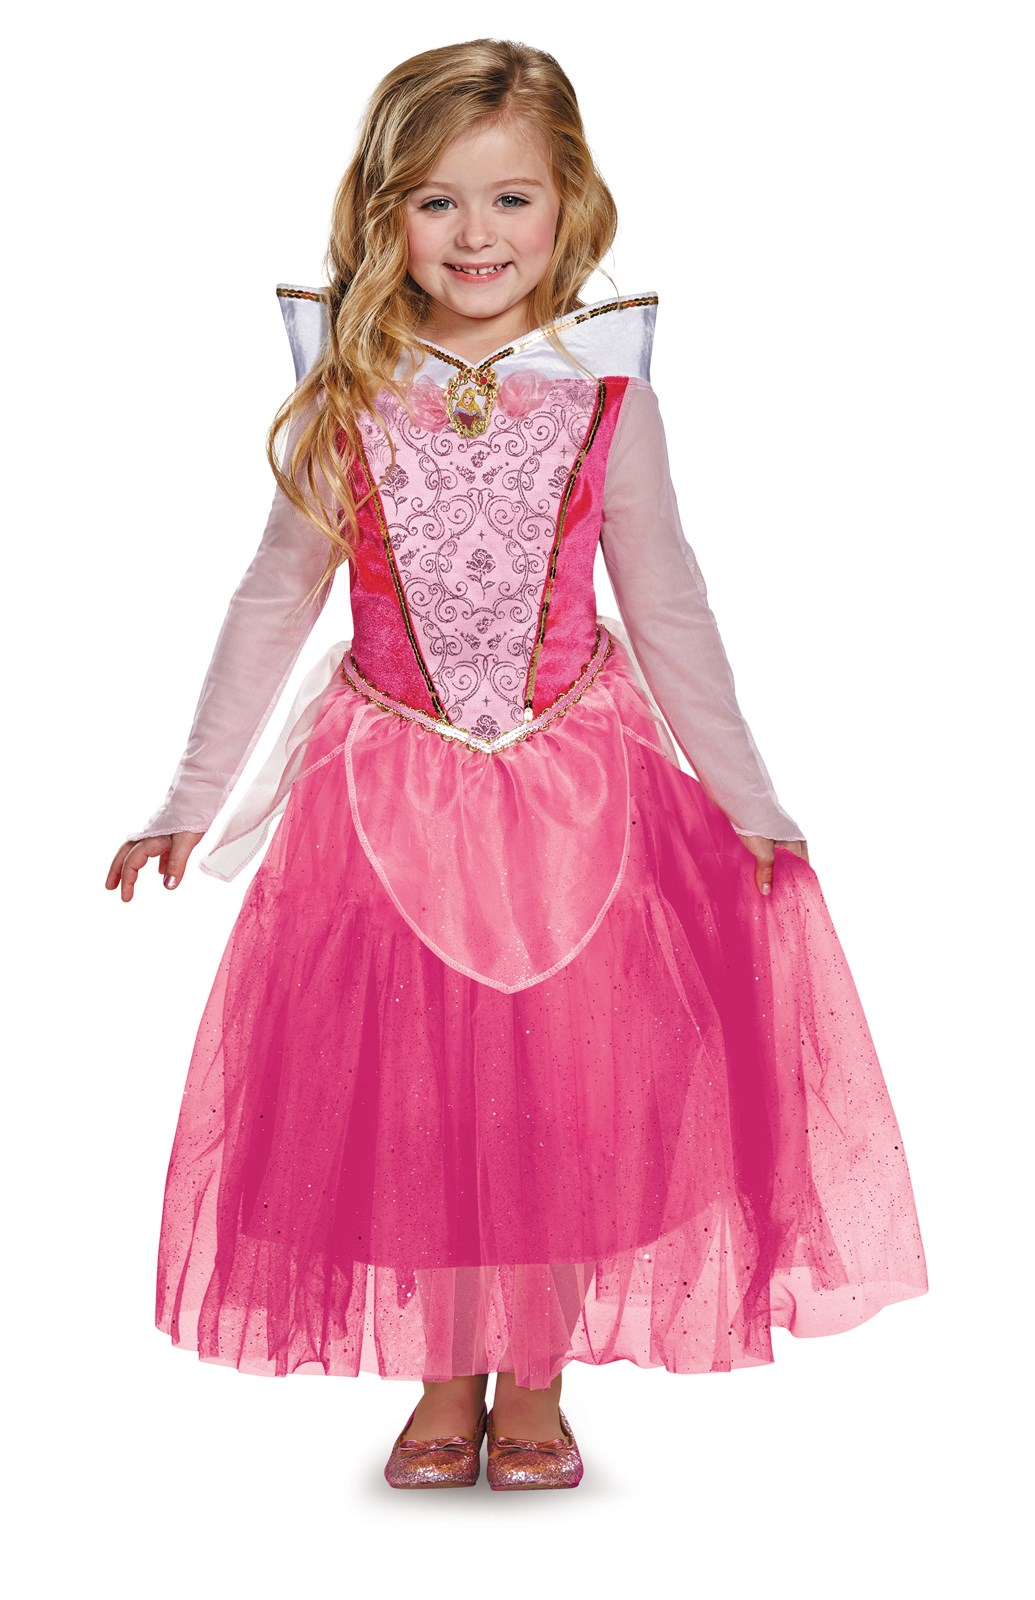 Disney Aurora Deluxe Sparkle Toddler / Child Costume 4-6